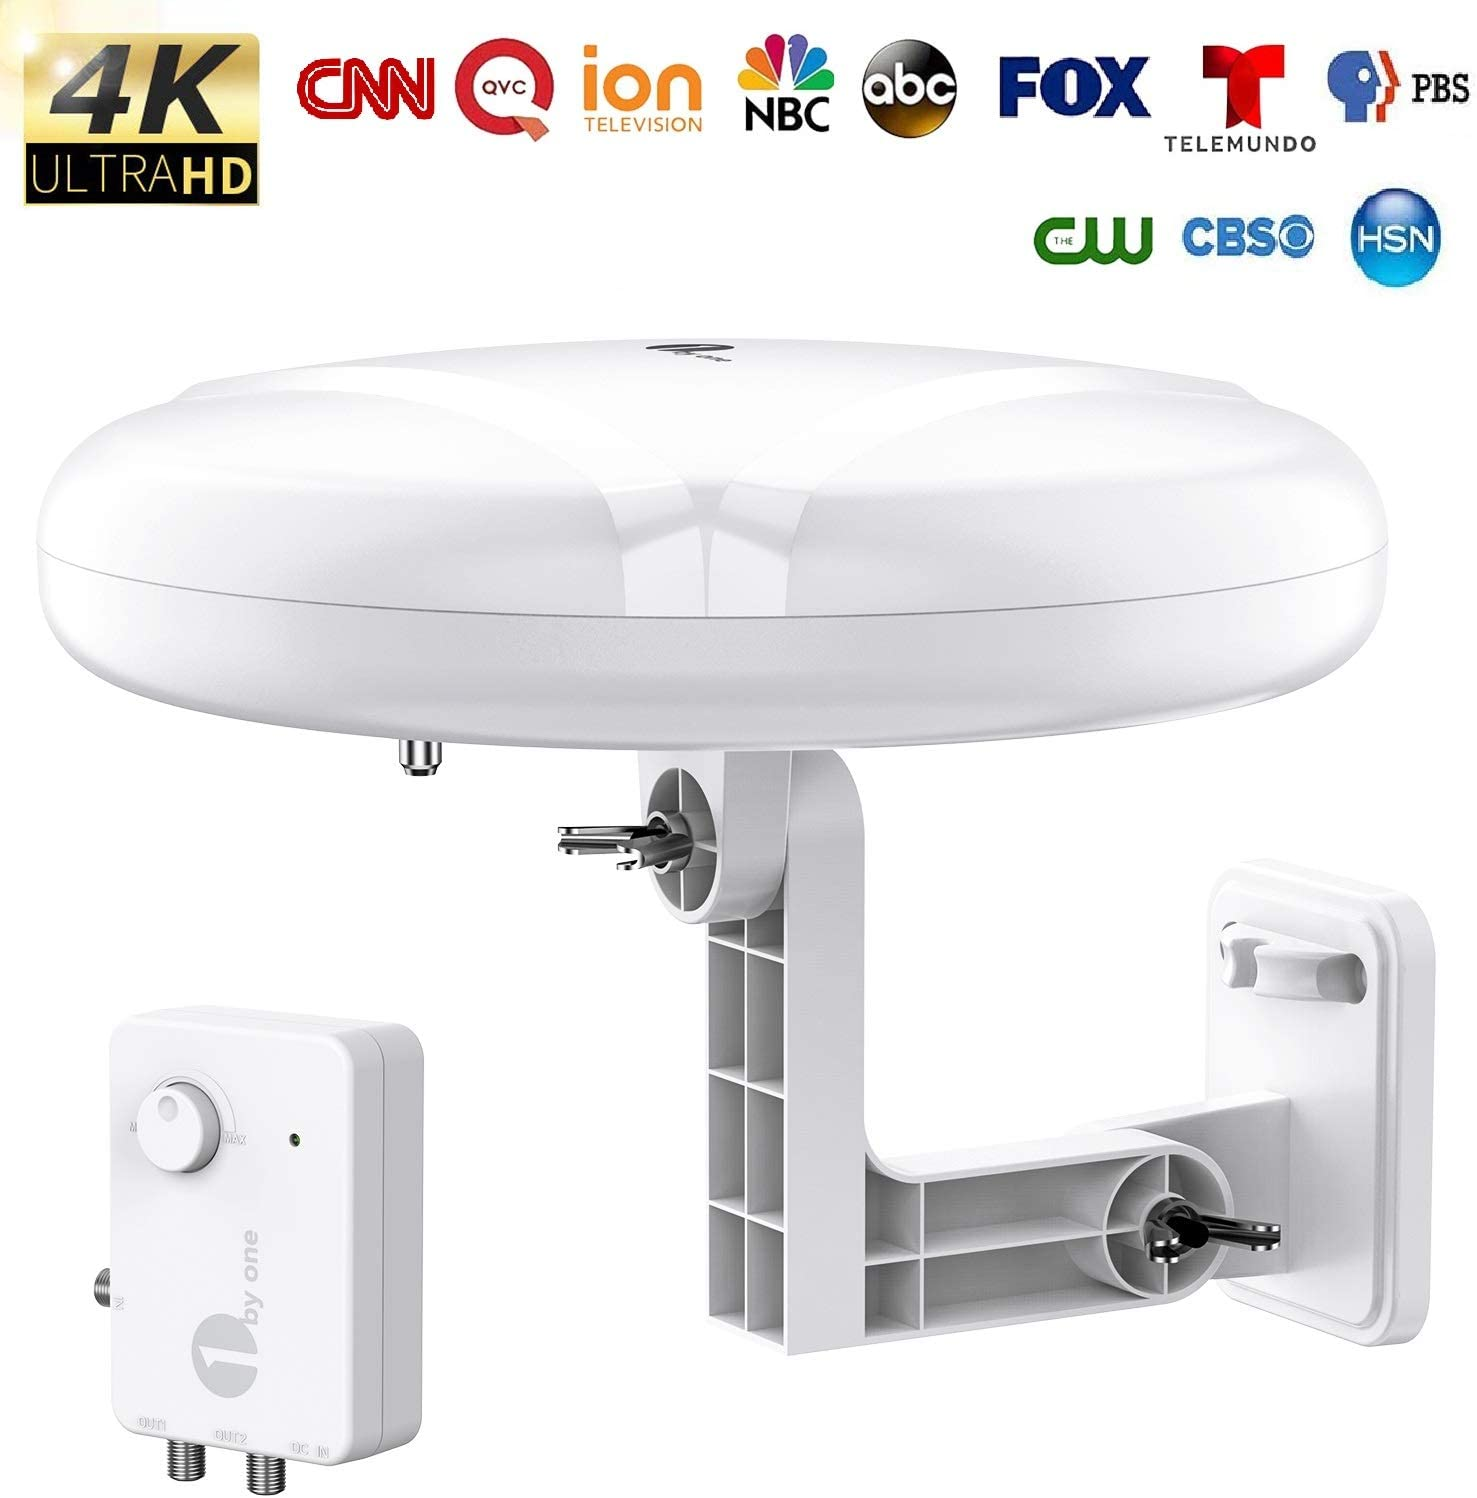 HDTV Antenna - 1byone 360° Omni-Directional Reception Amplified Outdoor TV Antenna Long Range for Indoor